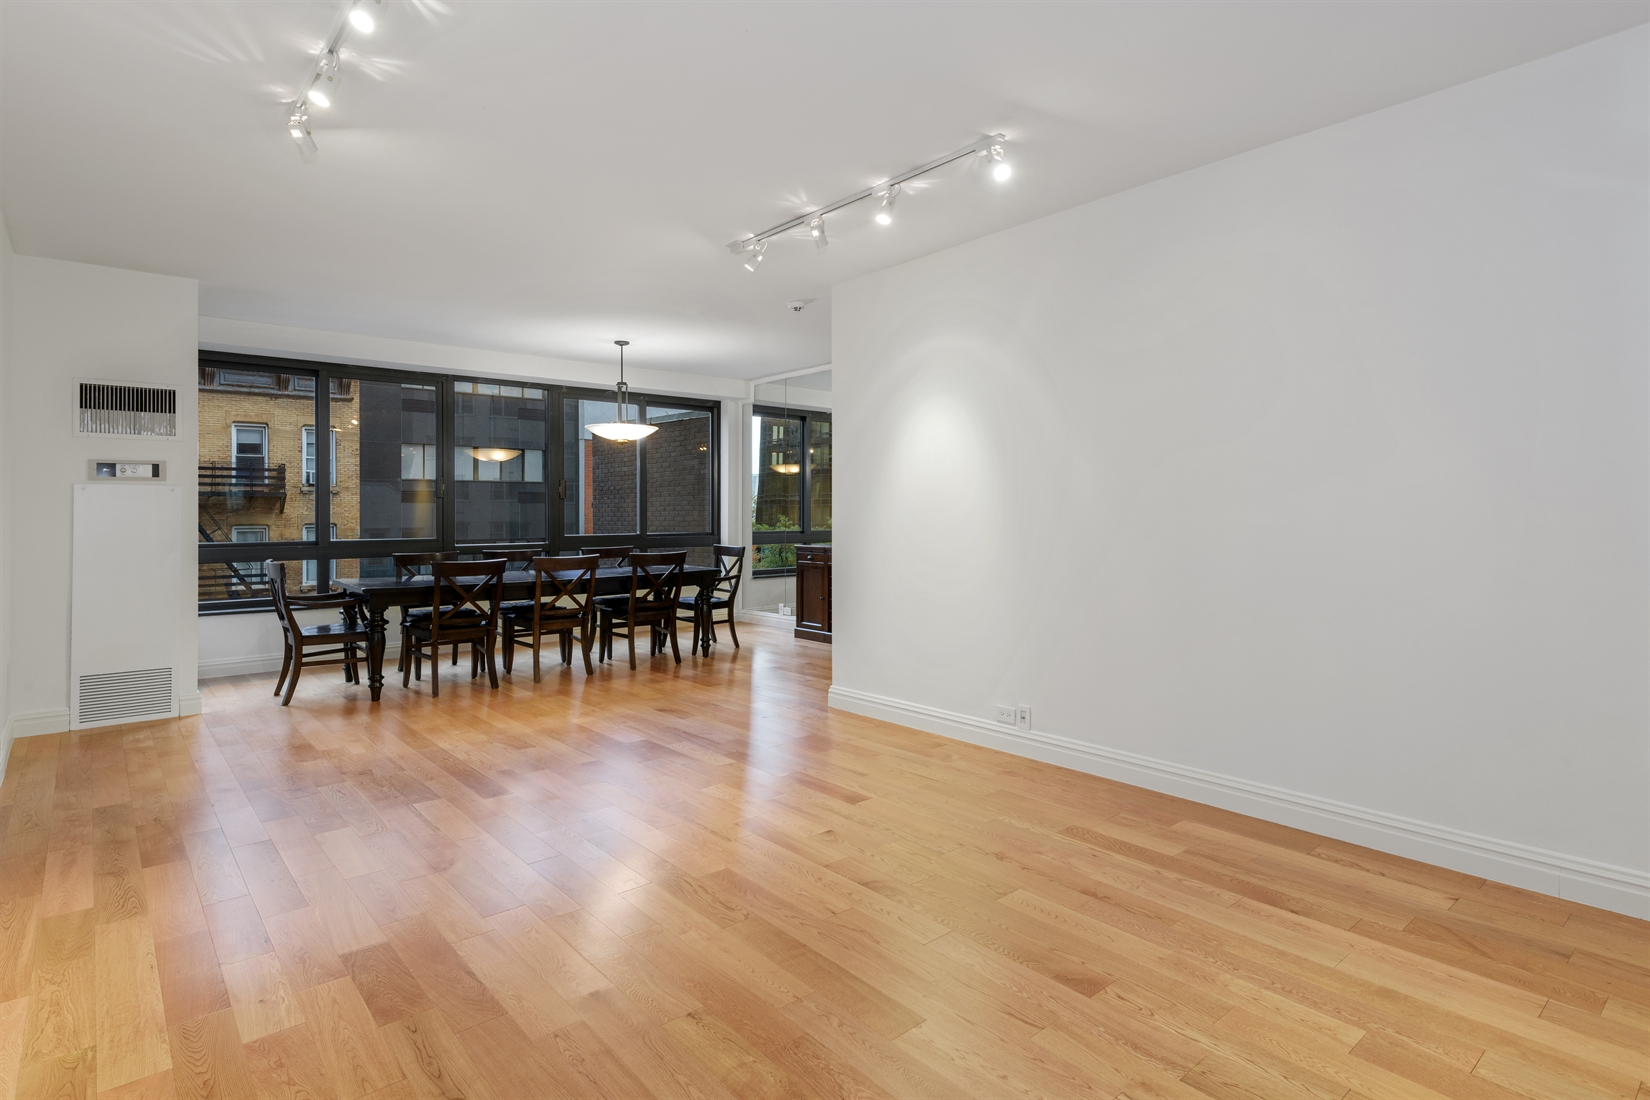 Rarely available, beautifully renovated and spacious split 2 bedroom, 2.5 bathroom apartment available for rent at 100 United Nations Plaza, a premier, white-glove condominium in Midtown East.Measuring approximately 1,321 square feet, unit 5E features a large living room and dining alcove, fully renovated kitchen and two bedrooms, each with its own en suite bathroom. The living and dining room will effortlessly accommodate multiple seating arrangements and dining for at least 8 guests. This flexible layout is ideal for day-to-day living and large enough for hosting small gatherings at home. The renovated kitchen has been completely upgraded and boasts granite counters and backsplash, a 6-burner Bertazonni range, French door refrigerator by Viking, Bosch dishwasher and undermount microwave. There is ample storage space and a double bowl stainless steel sink.The north-facing primary bedroom suite is pin-drop quiet and has an en suite marble bathroom with whirlpool bathtub and an extra-wide vanity. There is also a fully custom-outfitted walk-in closet. Equally as spacious is the south-facing second bedroom with a large floor-to-ceiling closet and an en suite marble bathroom with soaking bathtub. This move-in ready apartment has beautiful wood flooring, oversized windows, central heat and A/C, and a guest powder room.Located on East 48th Street and First Avenue, 100 United Nations Plaza is a white-glove, full service condominium in Manhattan's Turtle Bay neighborhood. Greeting residents with beautifully landscaped gardens and waterfalls, this impeccably run building offers a 24-hour doorman, valet and concierge service, on-site management office, renovated lobby and resident's lounge, common laundry room, fitness center and direct access to a 24-hour attended parking garage. Conveniently located to transportation and many great shops and restaurants. Condominium application required. Sorry, no pets.Showing by appointment only.